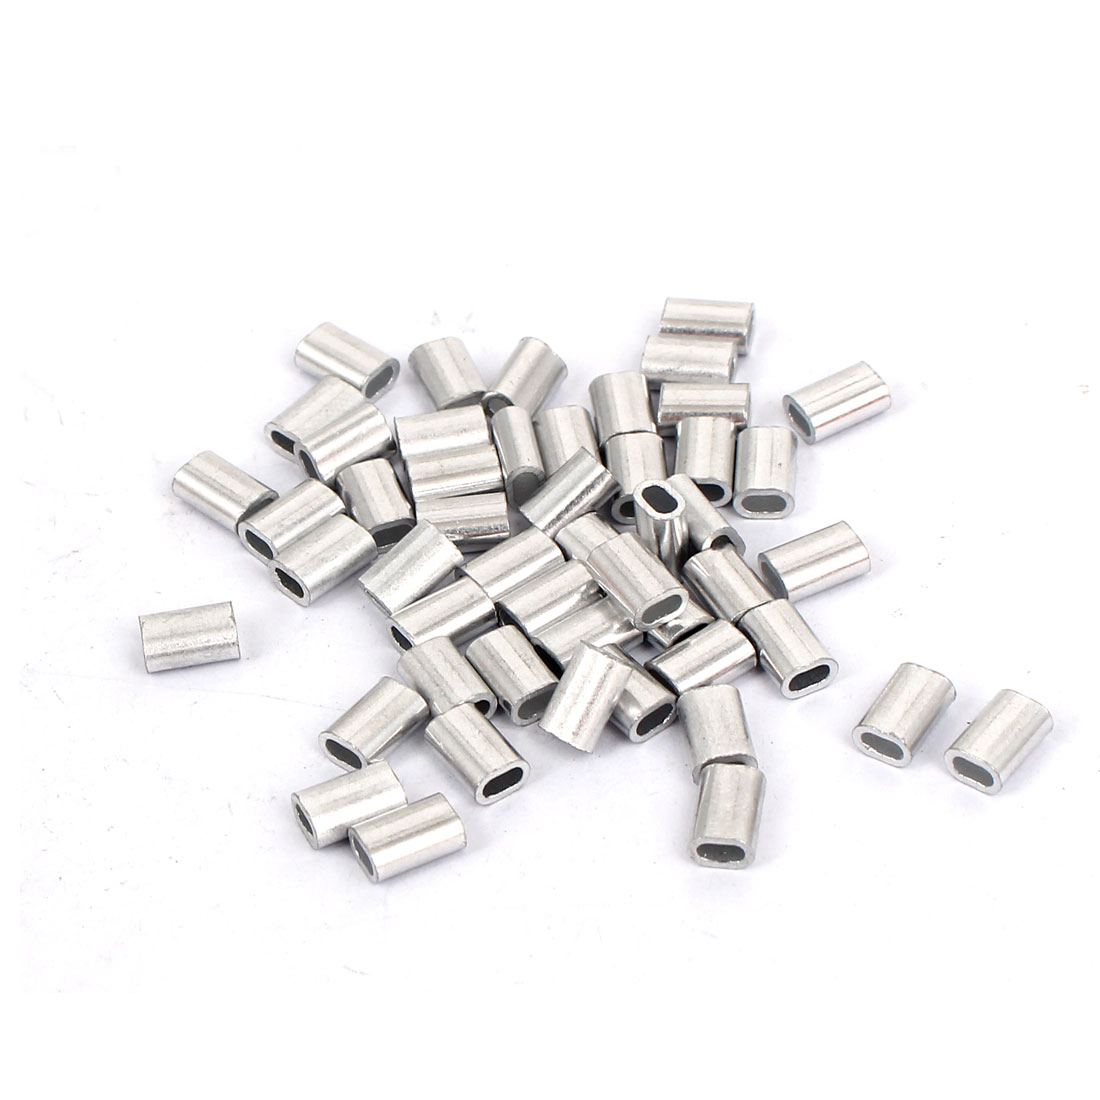 50pcs M1.5 Oval Aluminum Sleeves Clamps for Stianless Steel Wire Rope